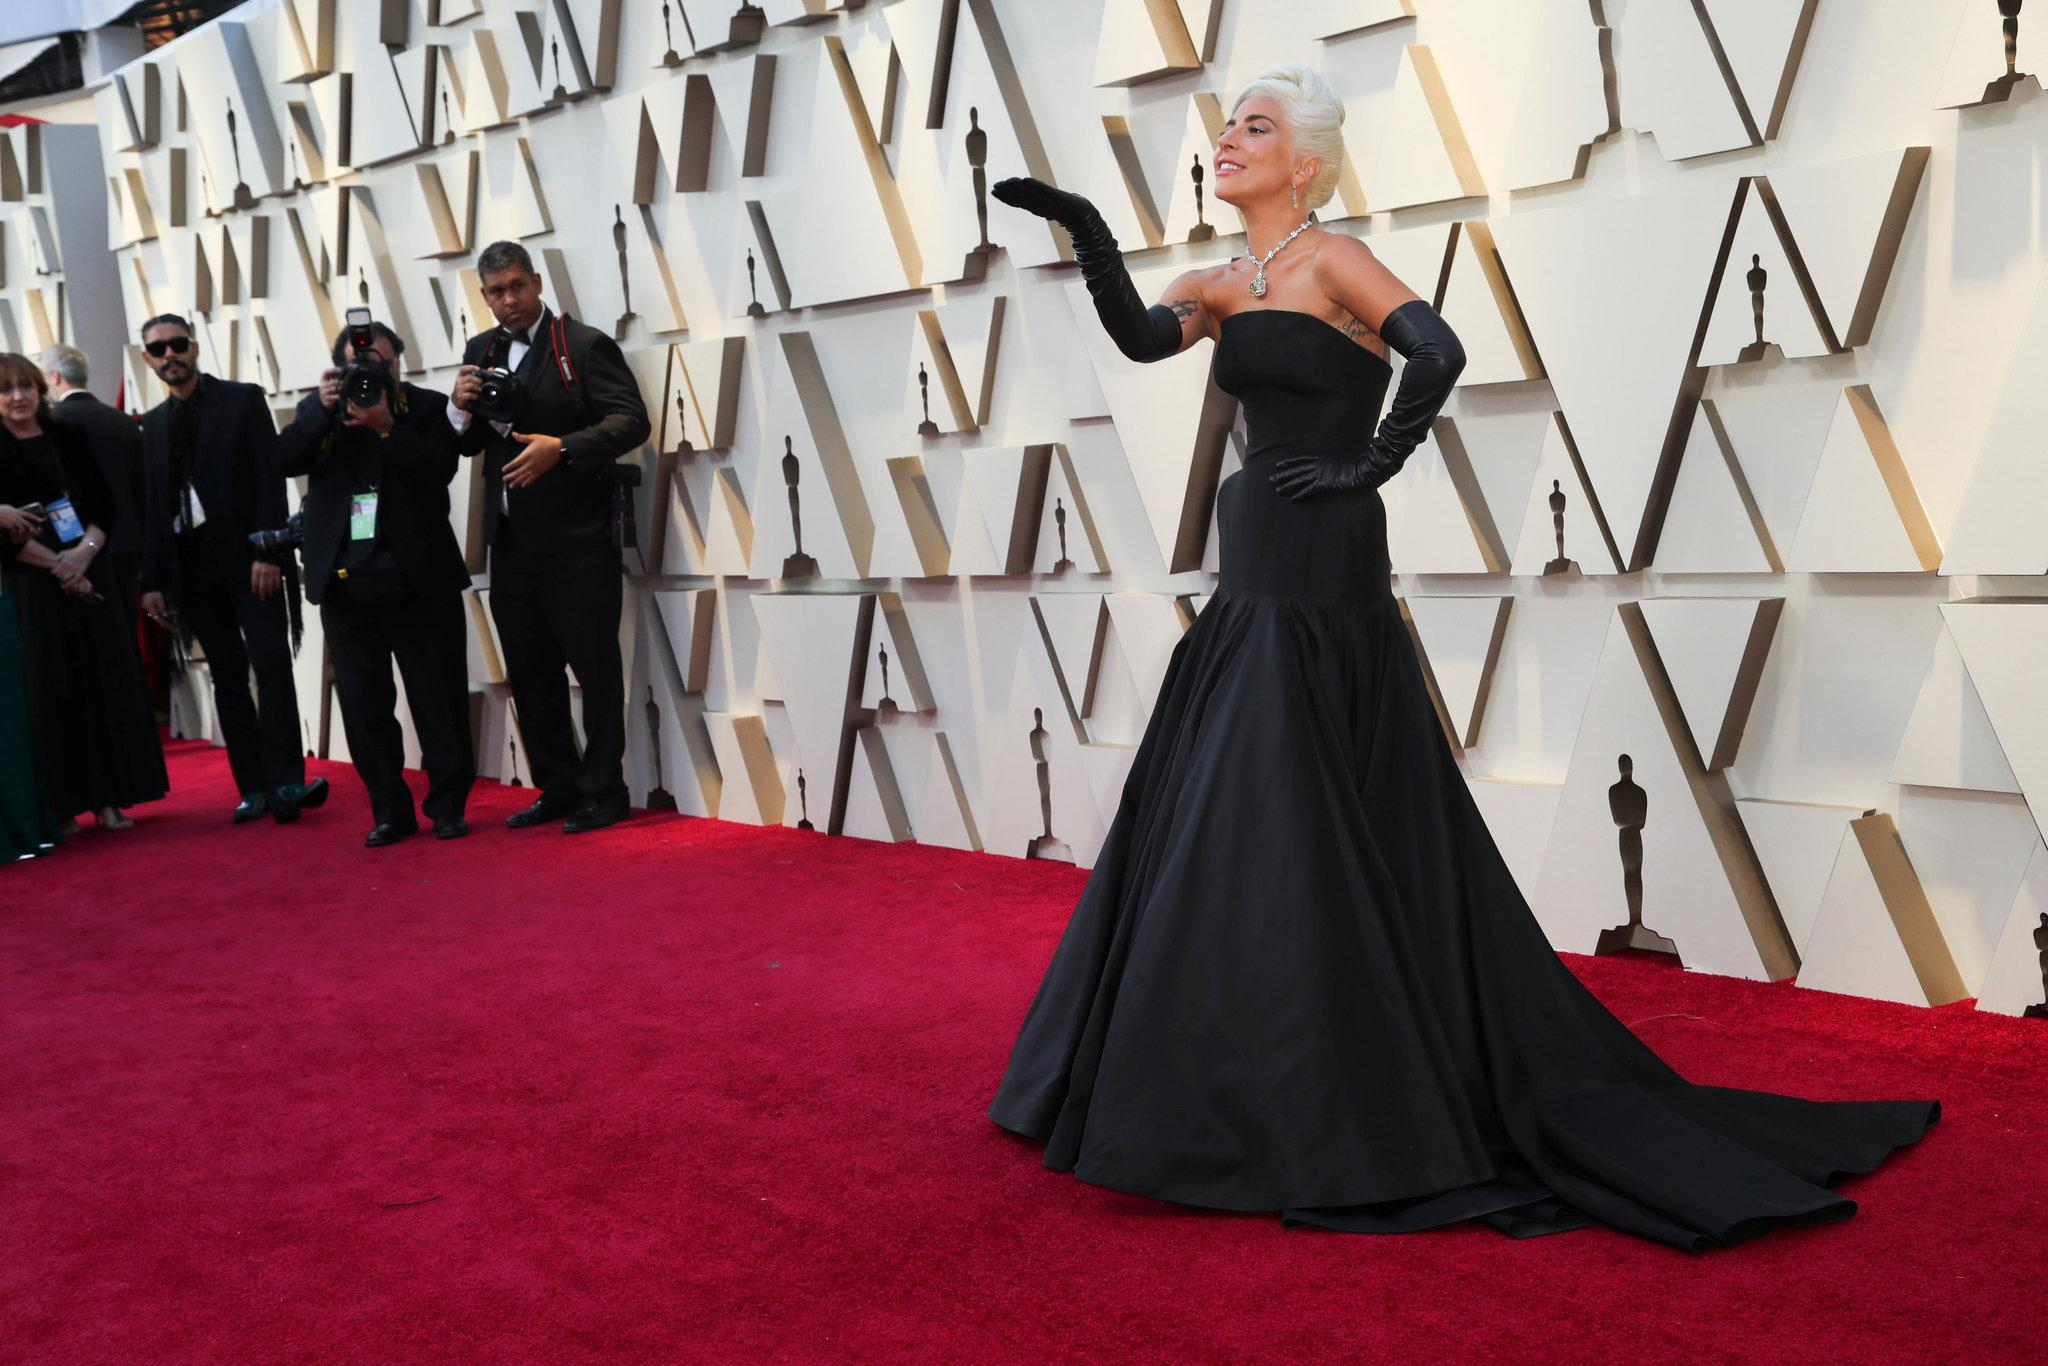 The Best fashion from the Red Carpet at the Oscars 2019